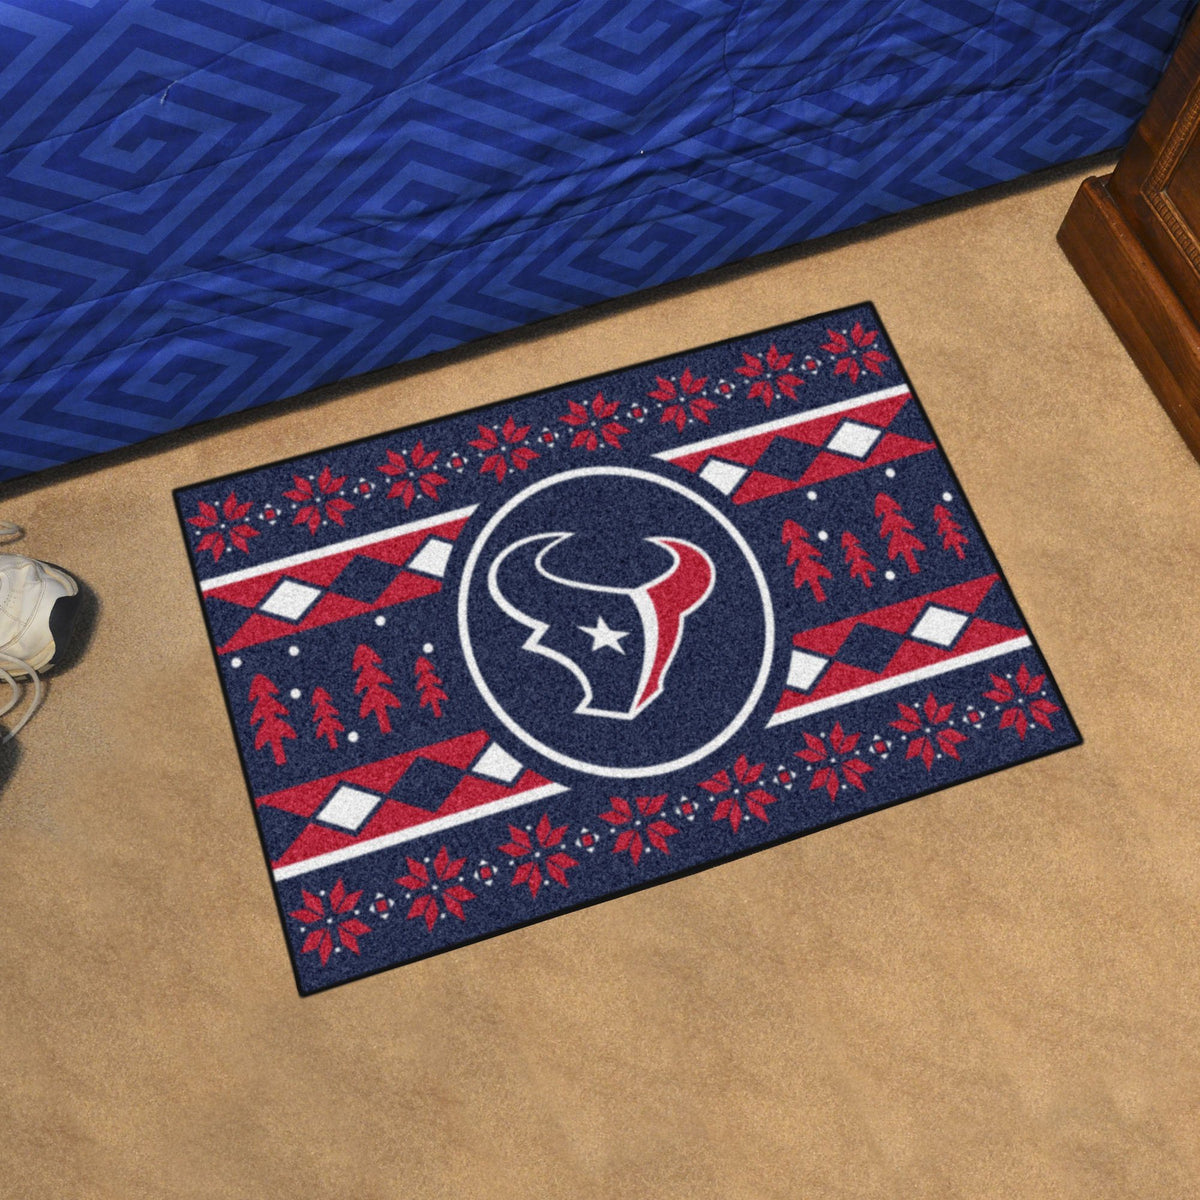 "NFL - Holiday Sweater Starter Mat, 19"" x 30"" NFL Mats, Rectangular Mats, Holiday Sweater Starter Mat, NFL, Home Fan Mats Houston Texans"